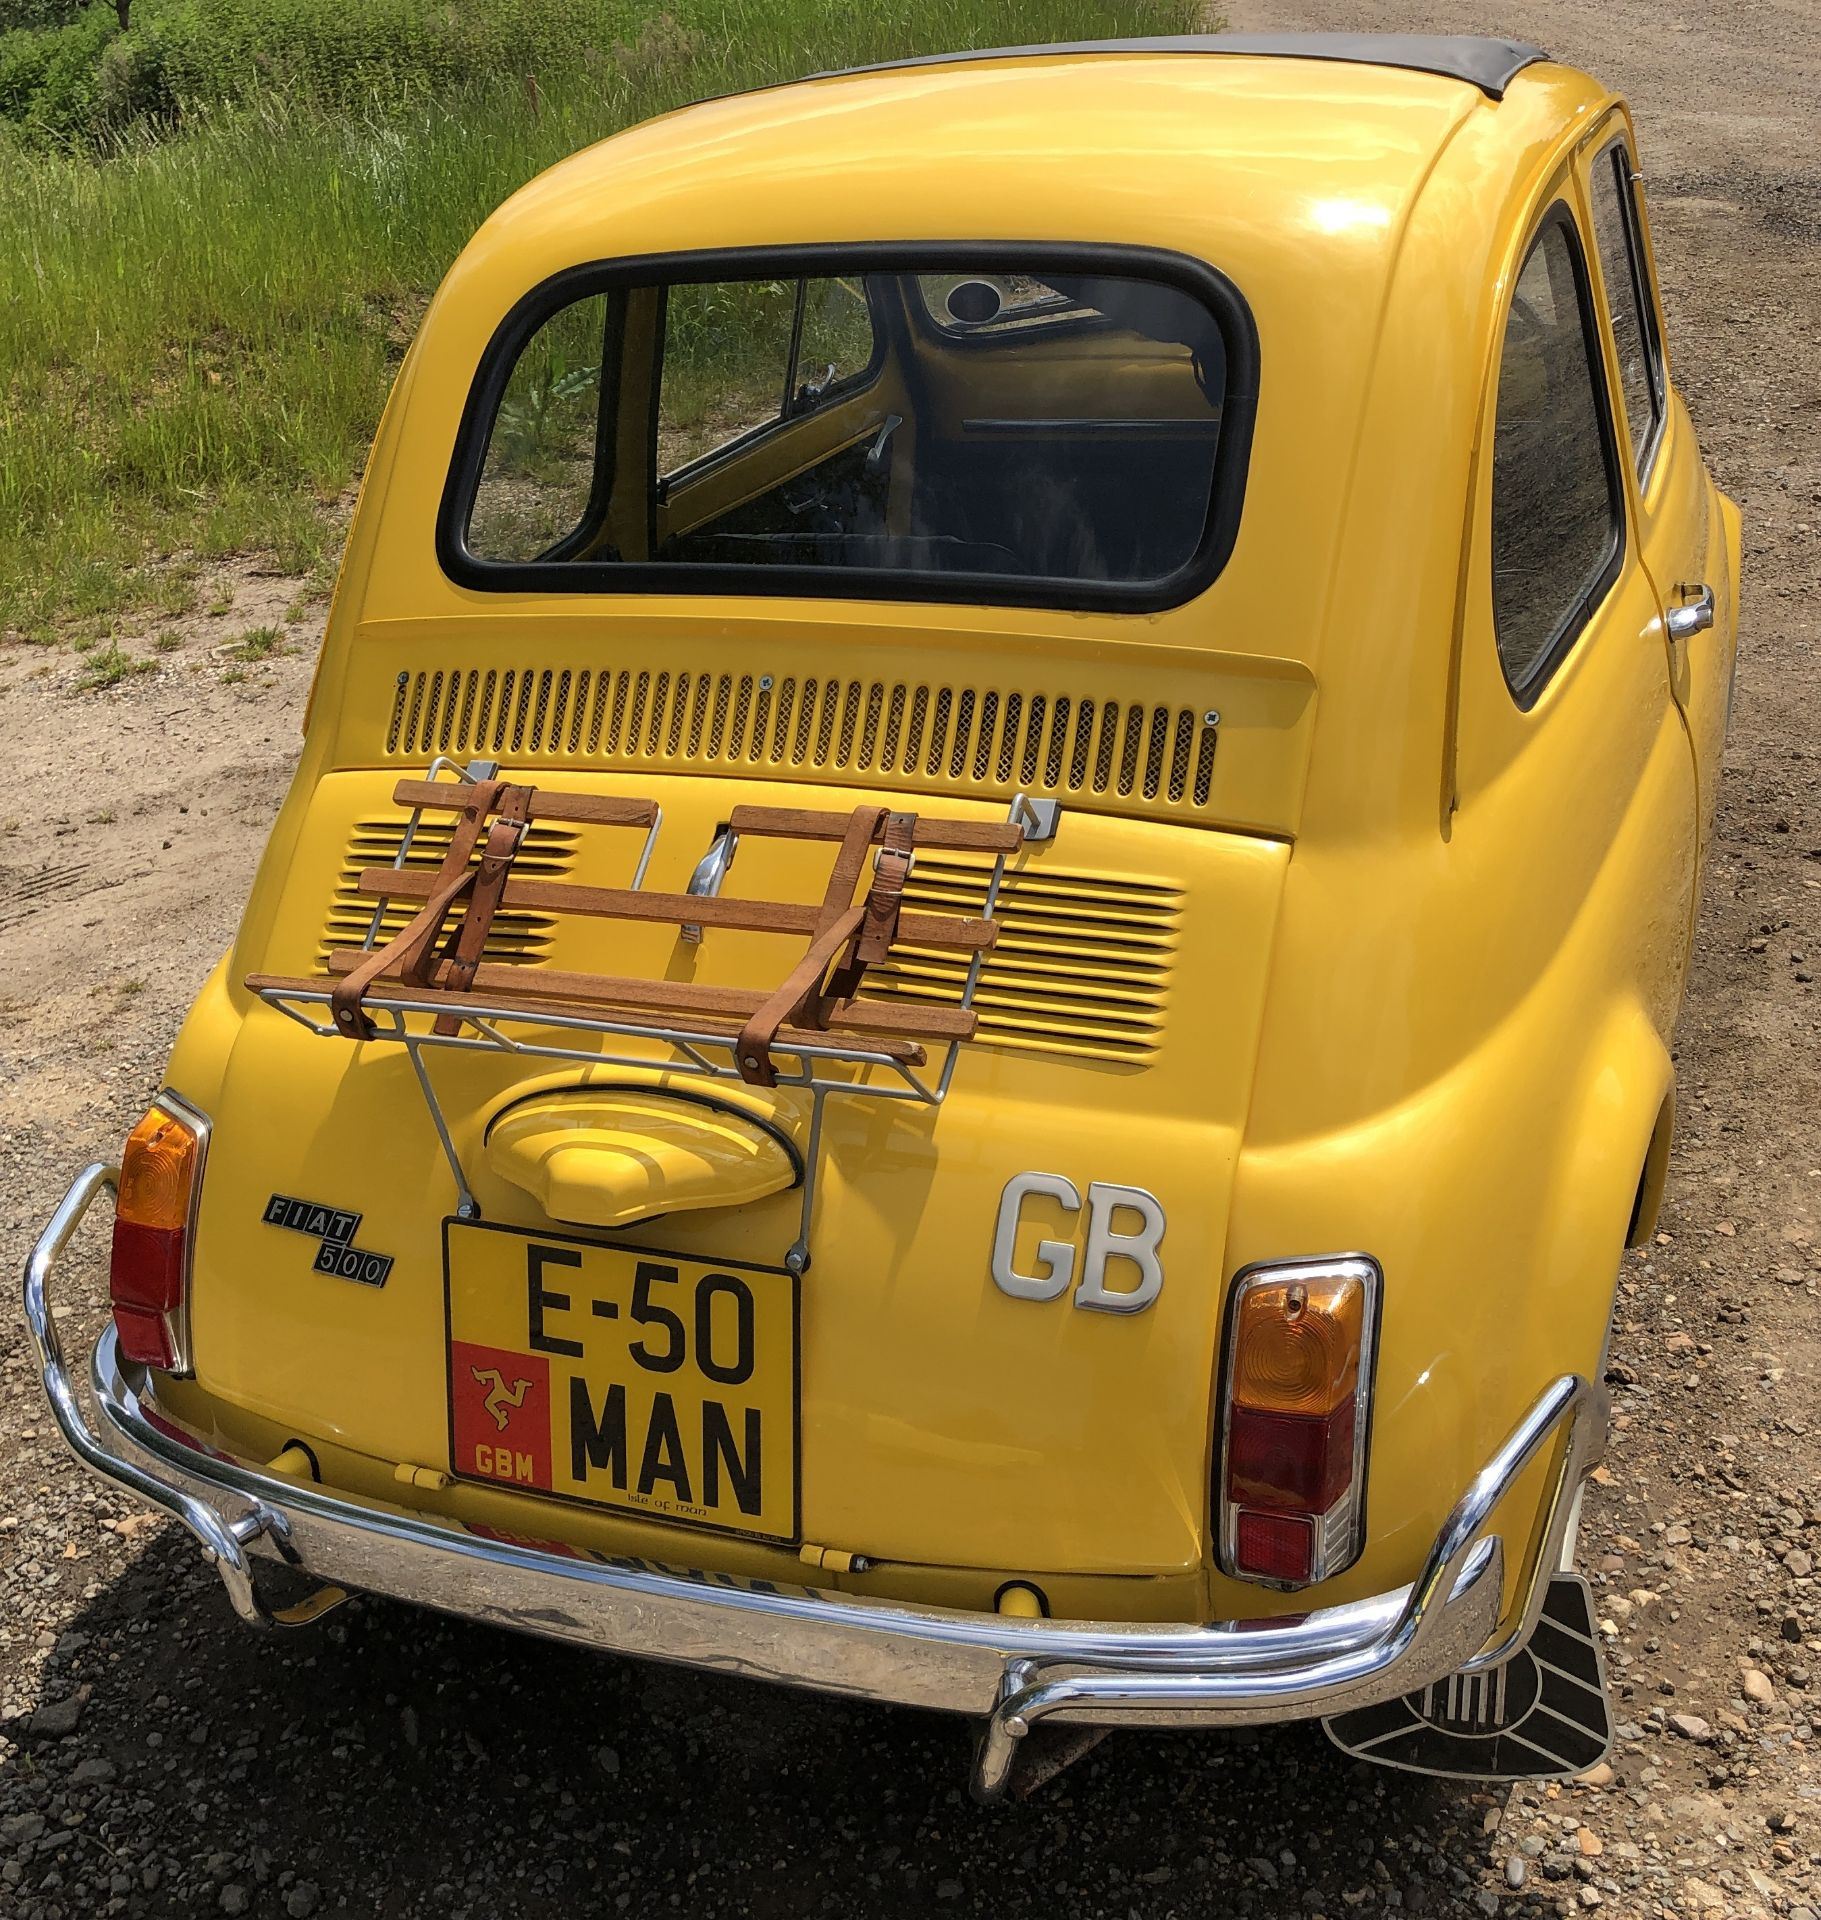 1972 Fiat 500 Saloon, Registration E-50-Man (IOM, Formally Registered as TGF 249L), First Registered - Image 34 of 34